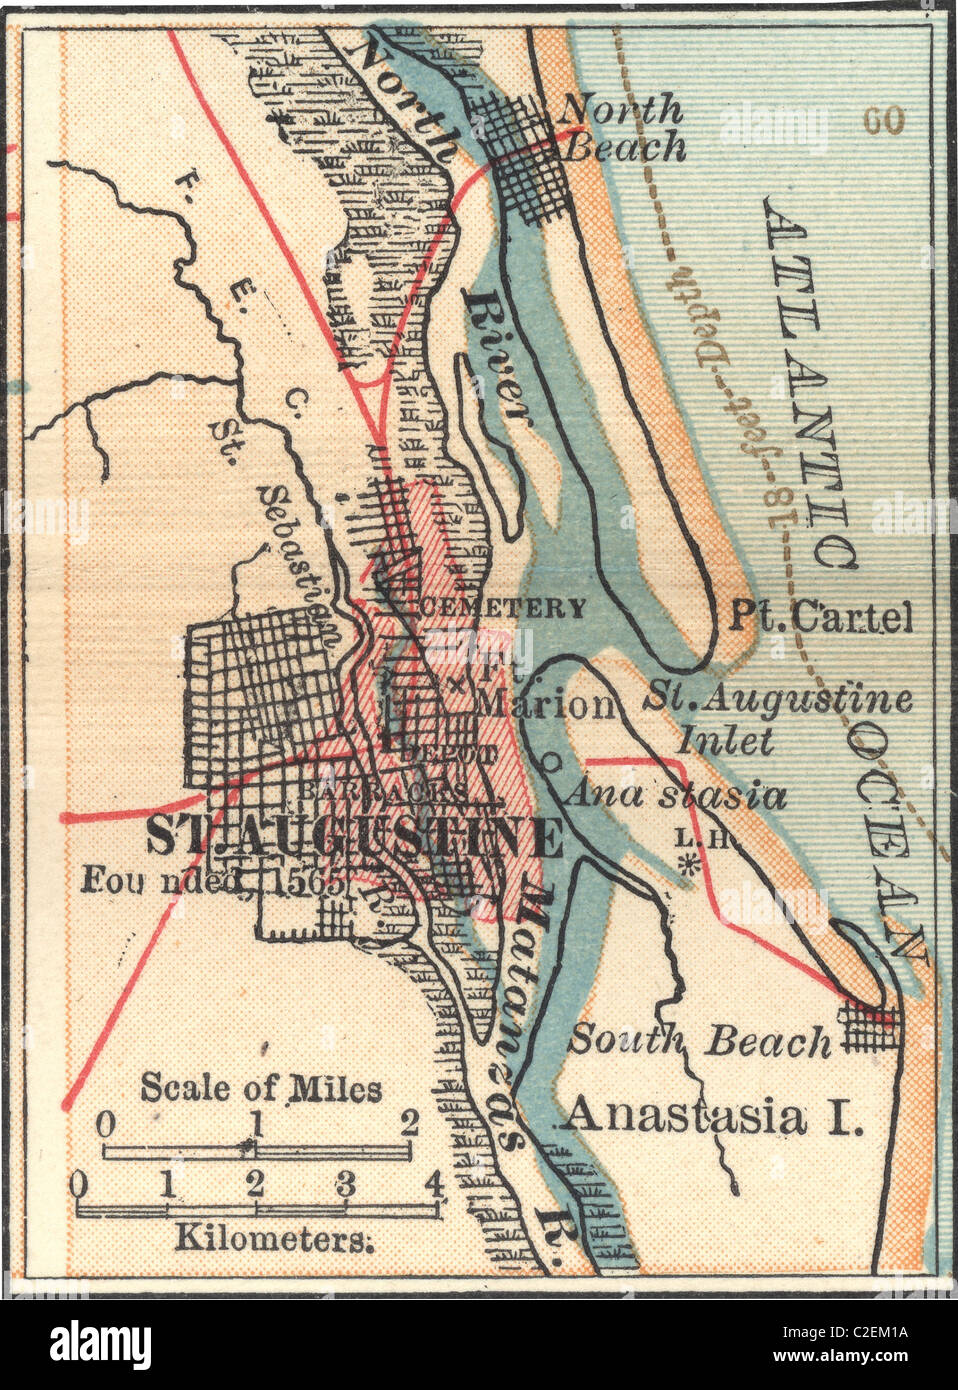 Map Of St Augustine Florida.Map Of St Augustine Florida Stock Photo 35973094 Alamy